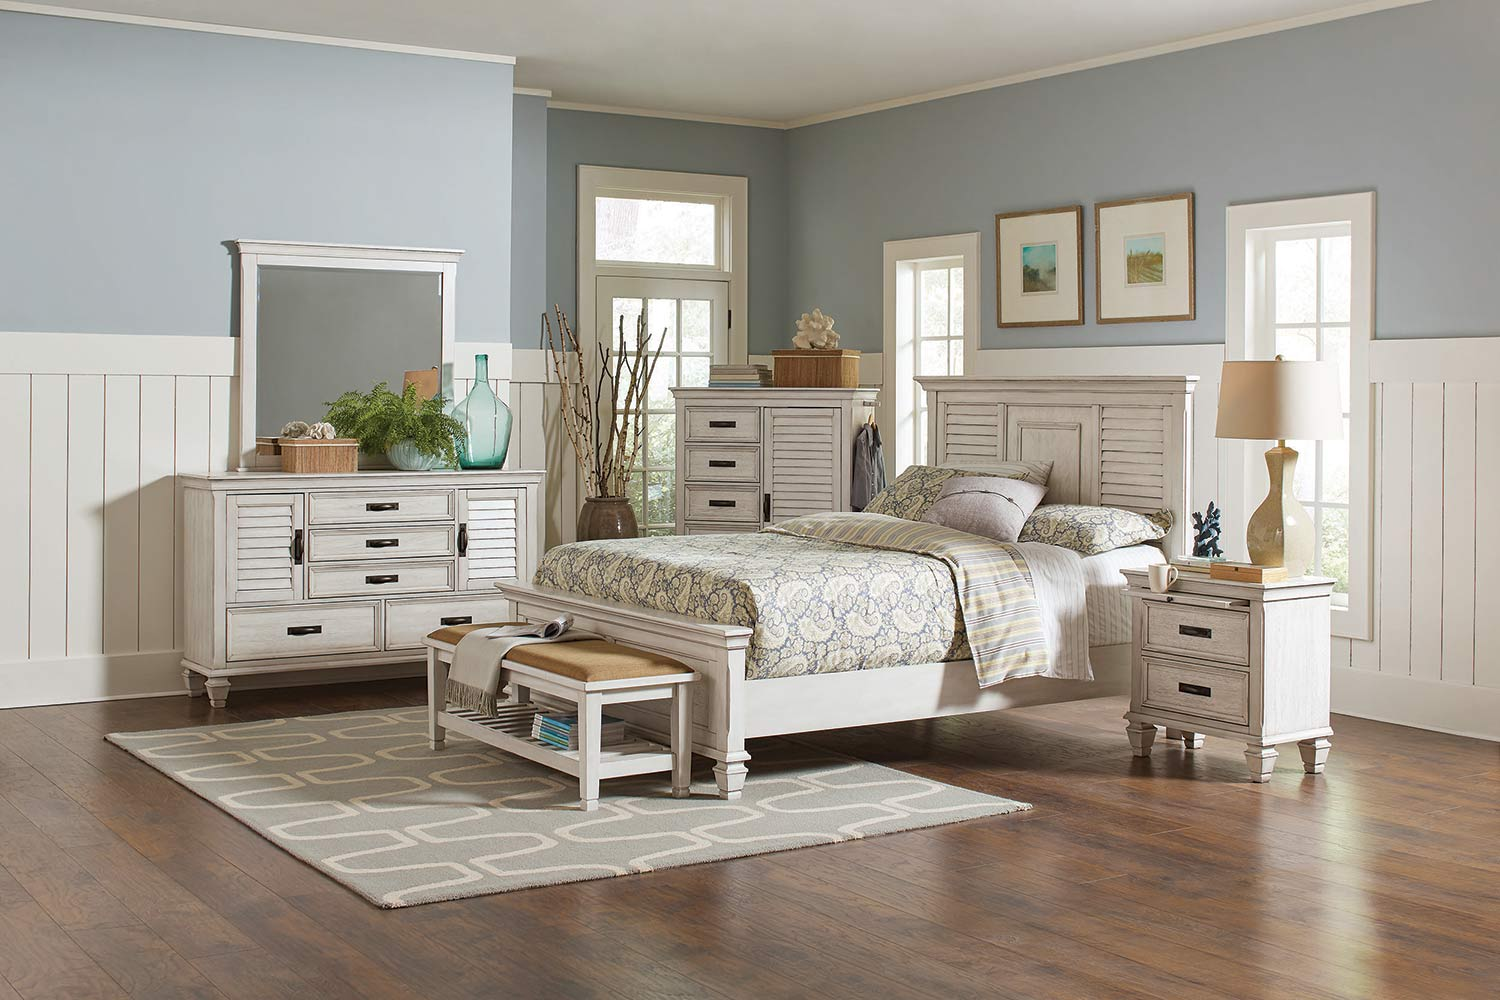 Coaster Liza Bedroom Collection - Antique White